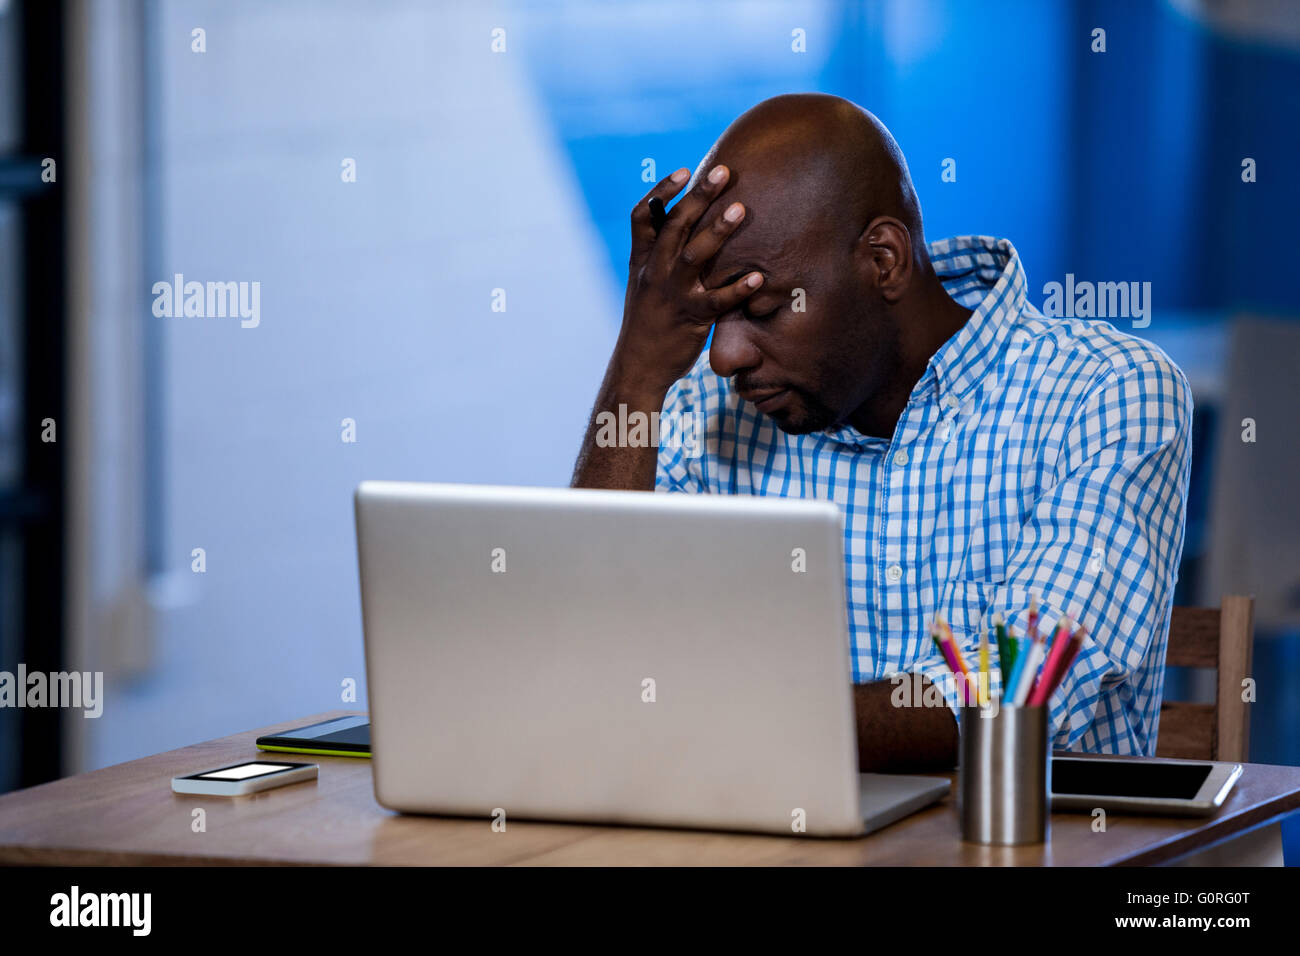 Business man looking overworked and exhausted - Stock Image